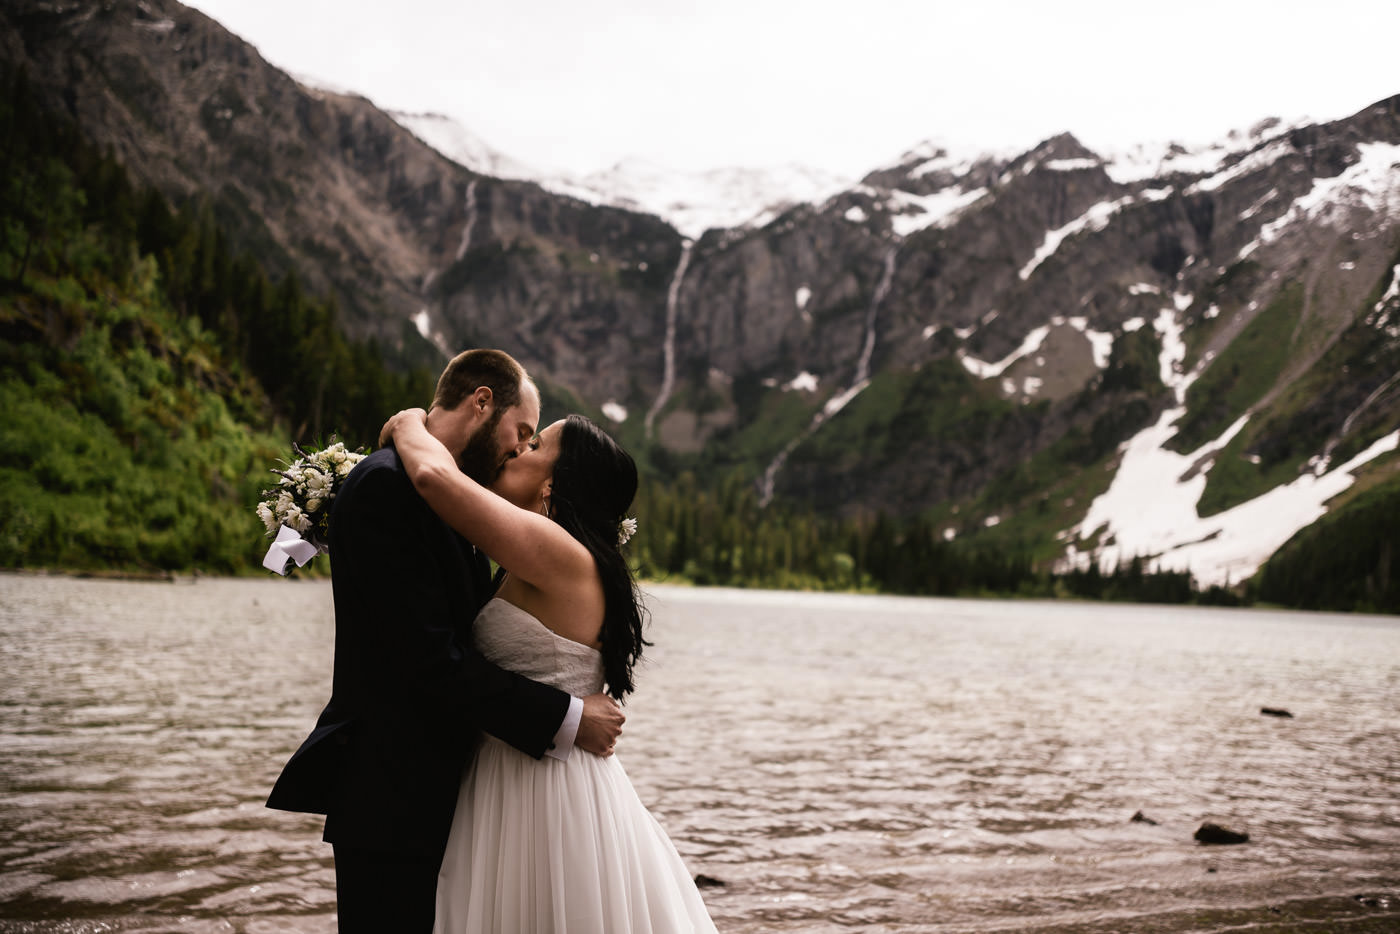 Newlyweds kiss before Avalanche Lake in Glacier National Park.